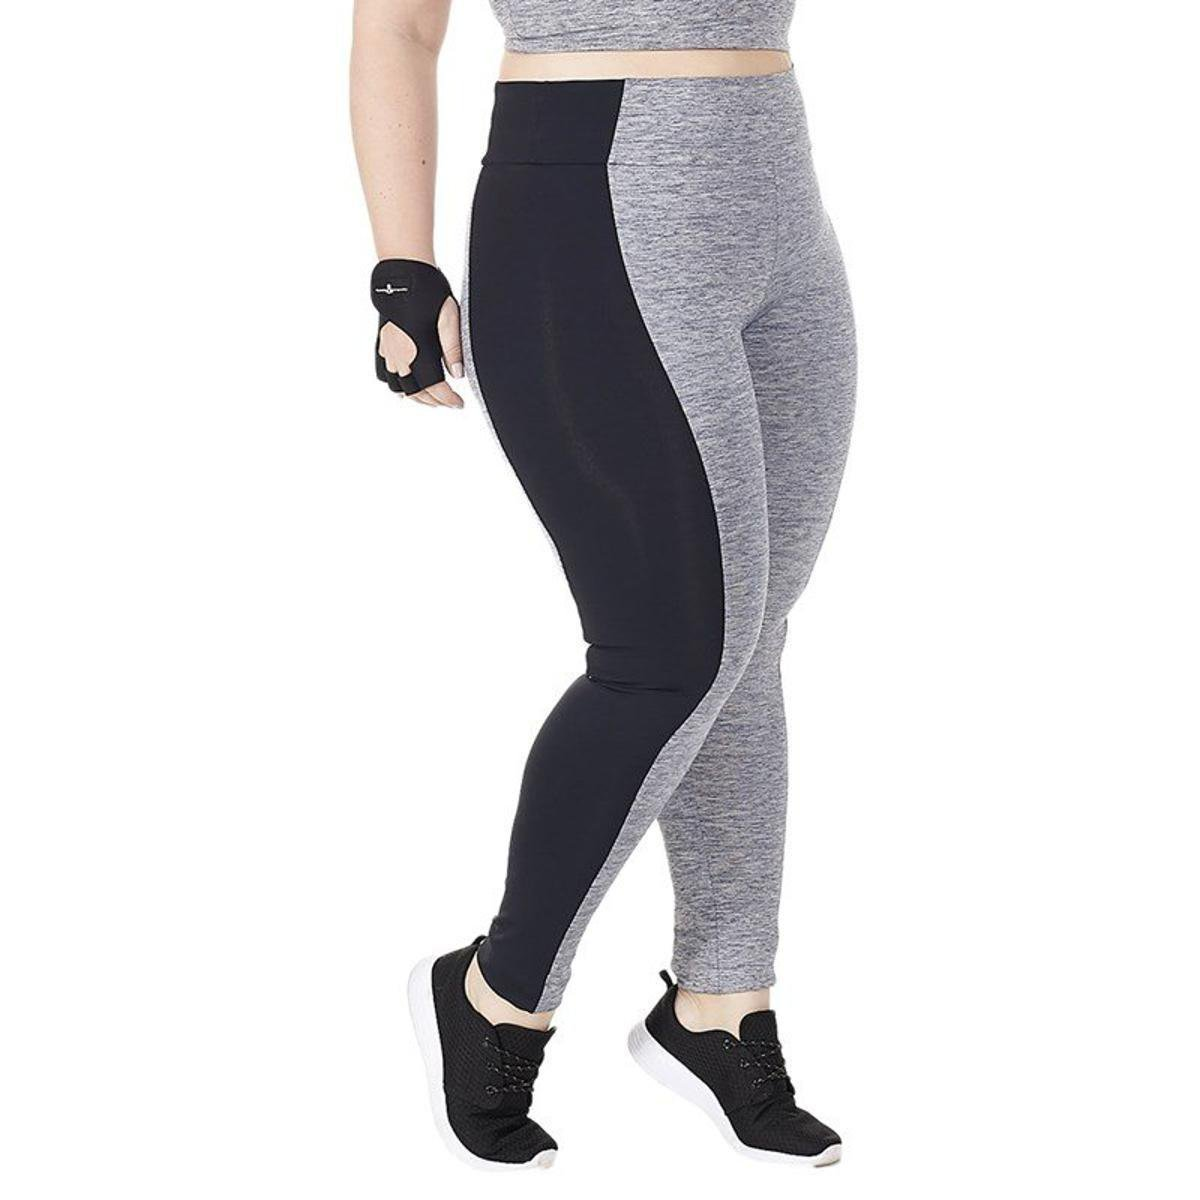 Cinza Moviment Size Calça Legging Legging E Calça Legend Plus g8BqpR